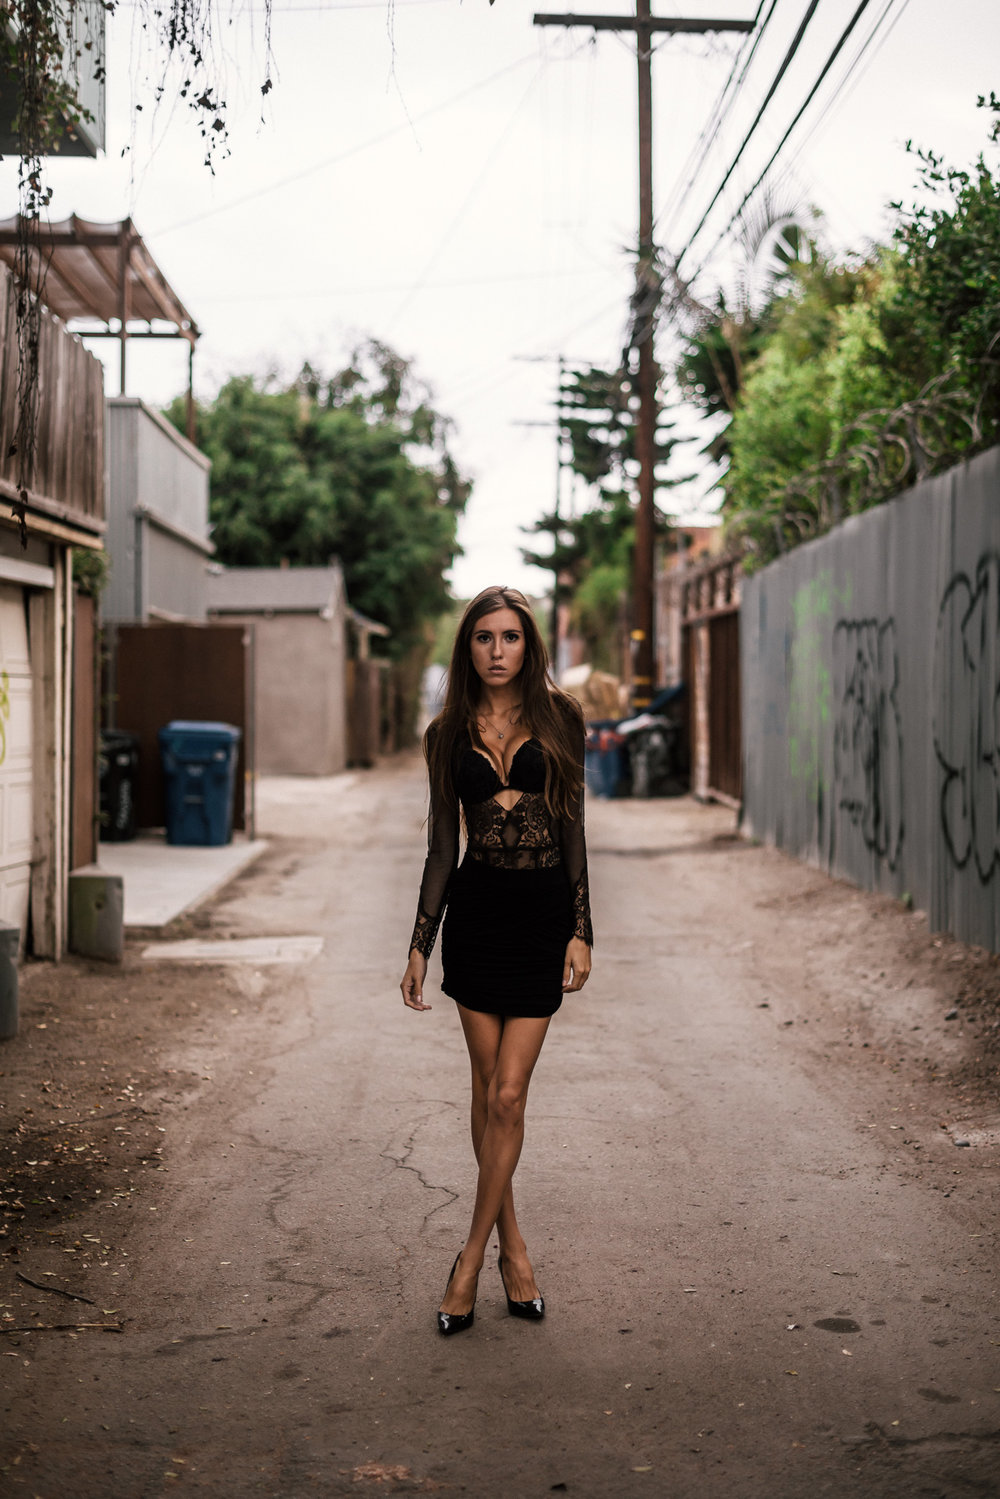 model poses in city alley The Hungarion Brunette Lingerie as outerwear fashion photoshoot in Venice Beach California